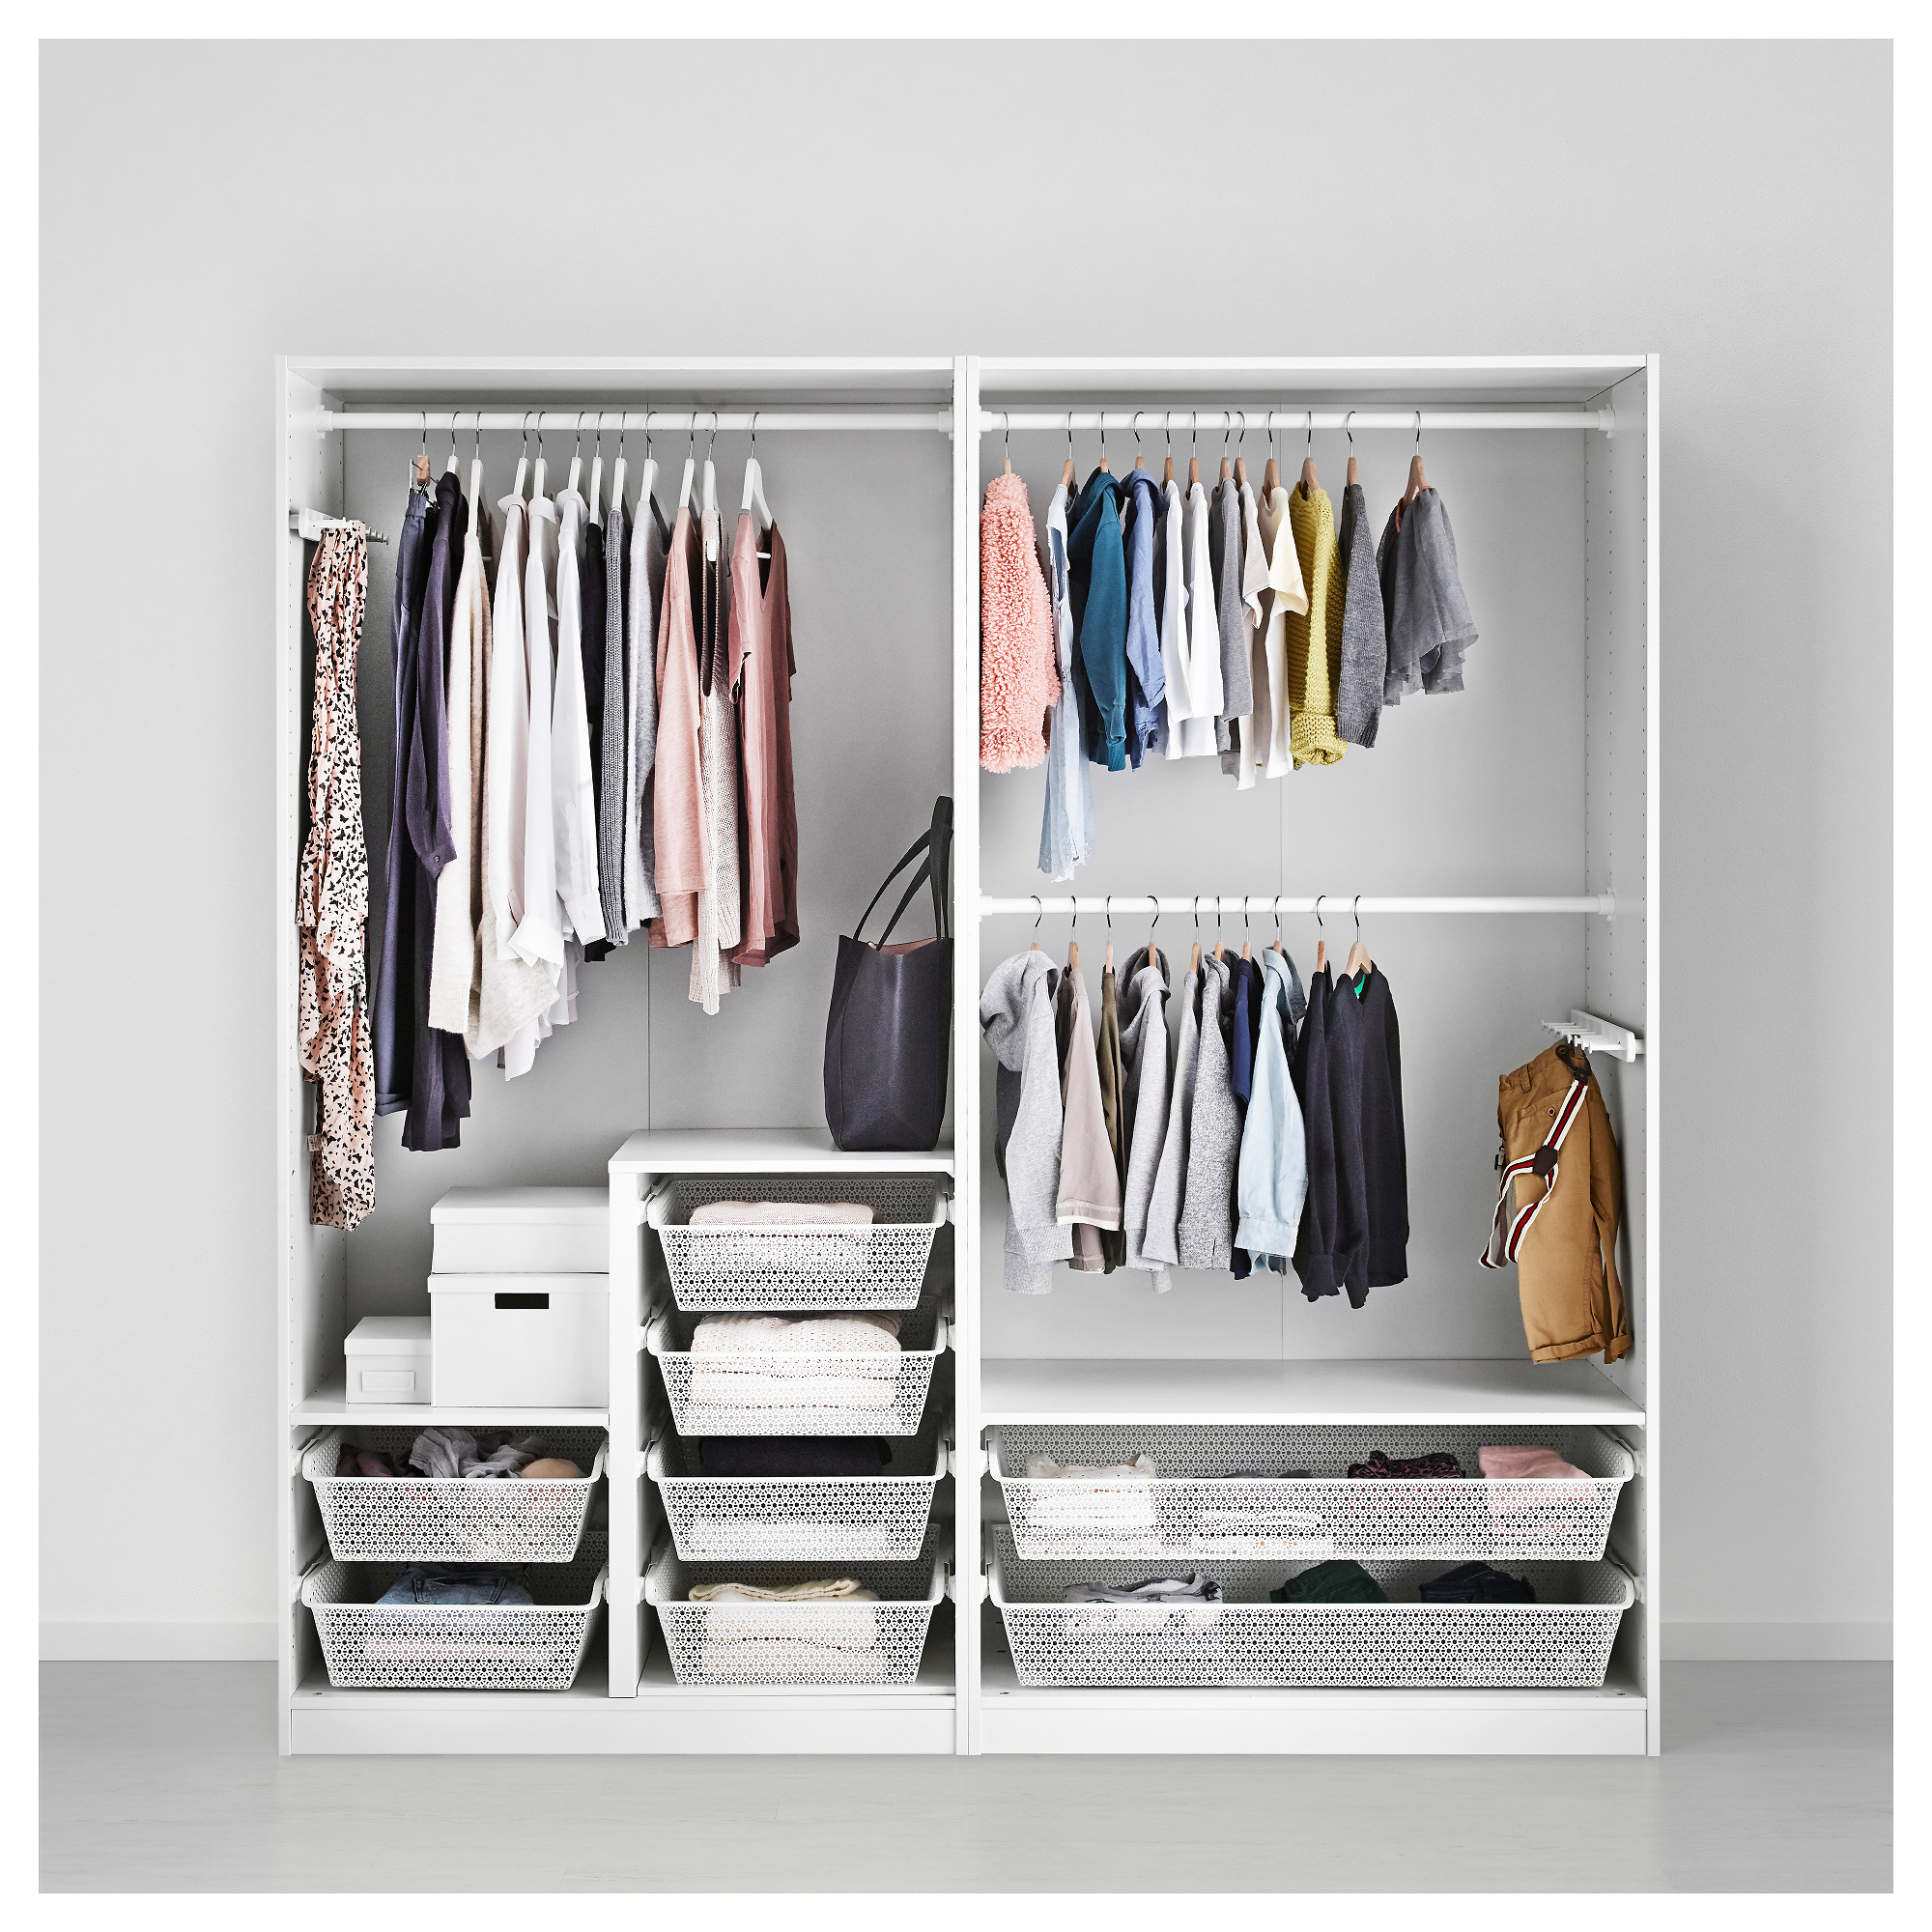 Ikea Wardrobe | Ikea Pax Wardrobe Review | Ikea Wardrobes for Small Spaces